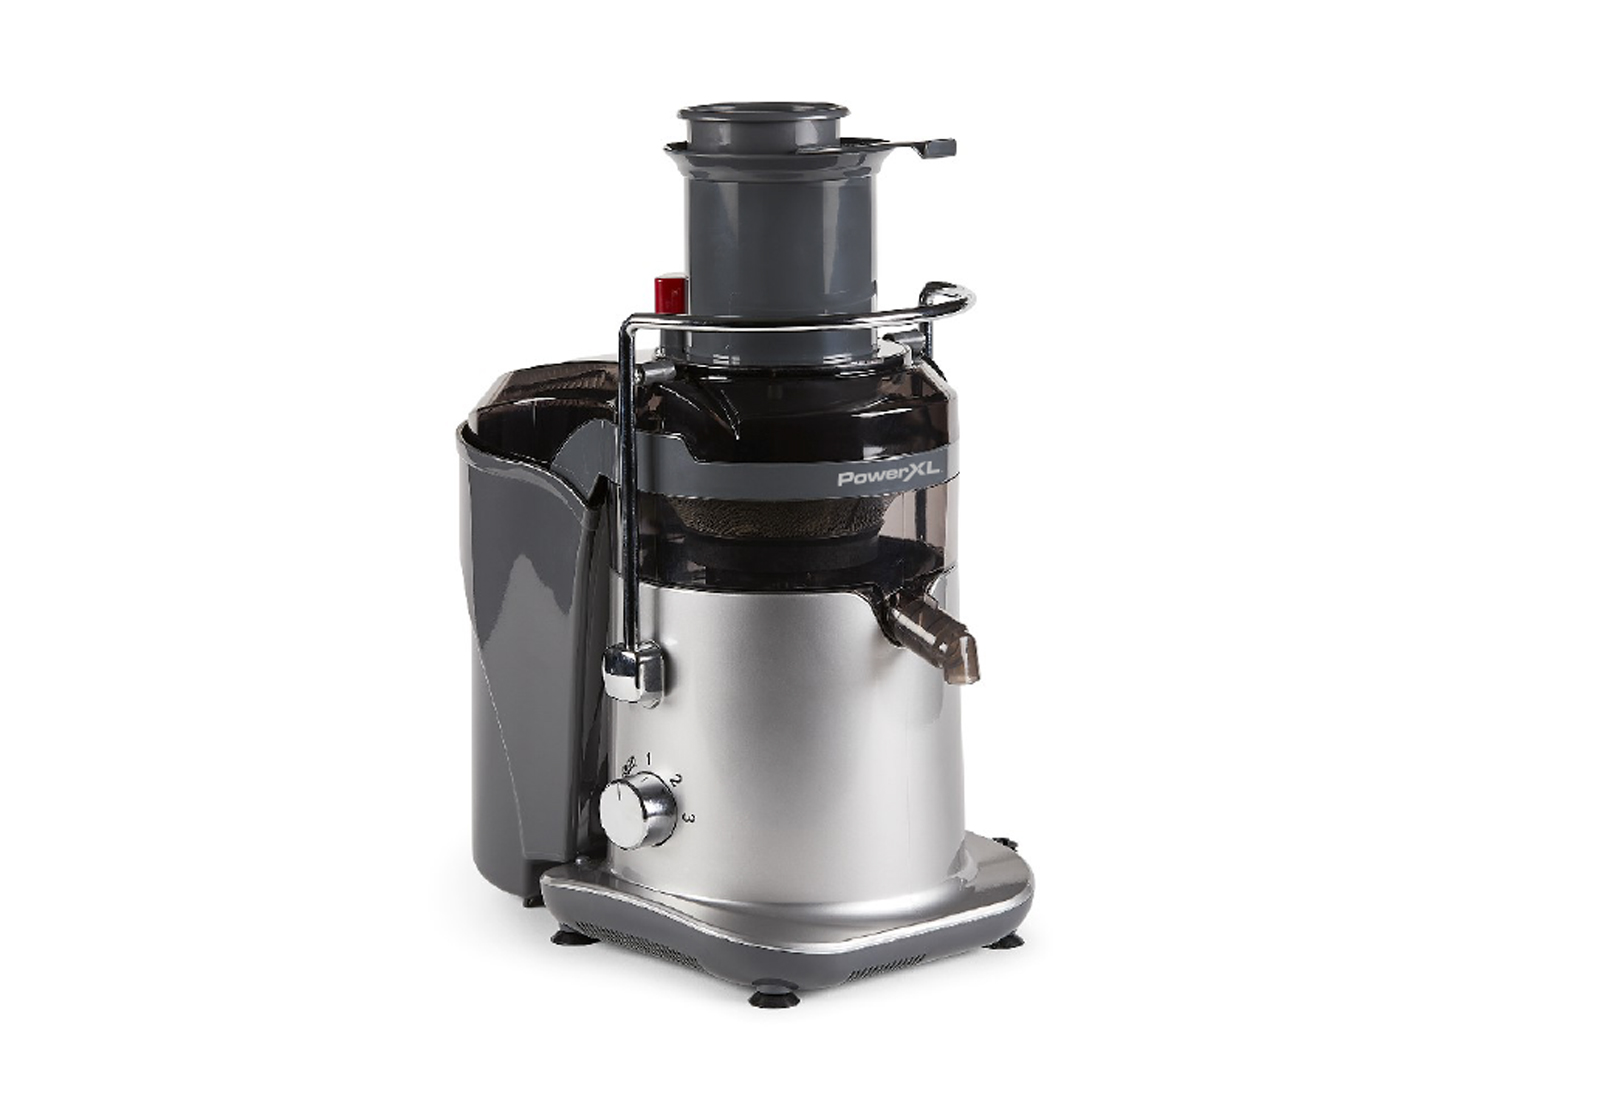 PowerXL Self Cleaning Juicer Product Image